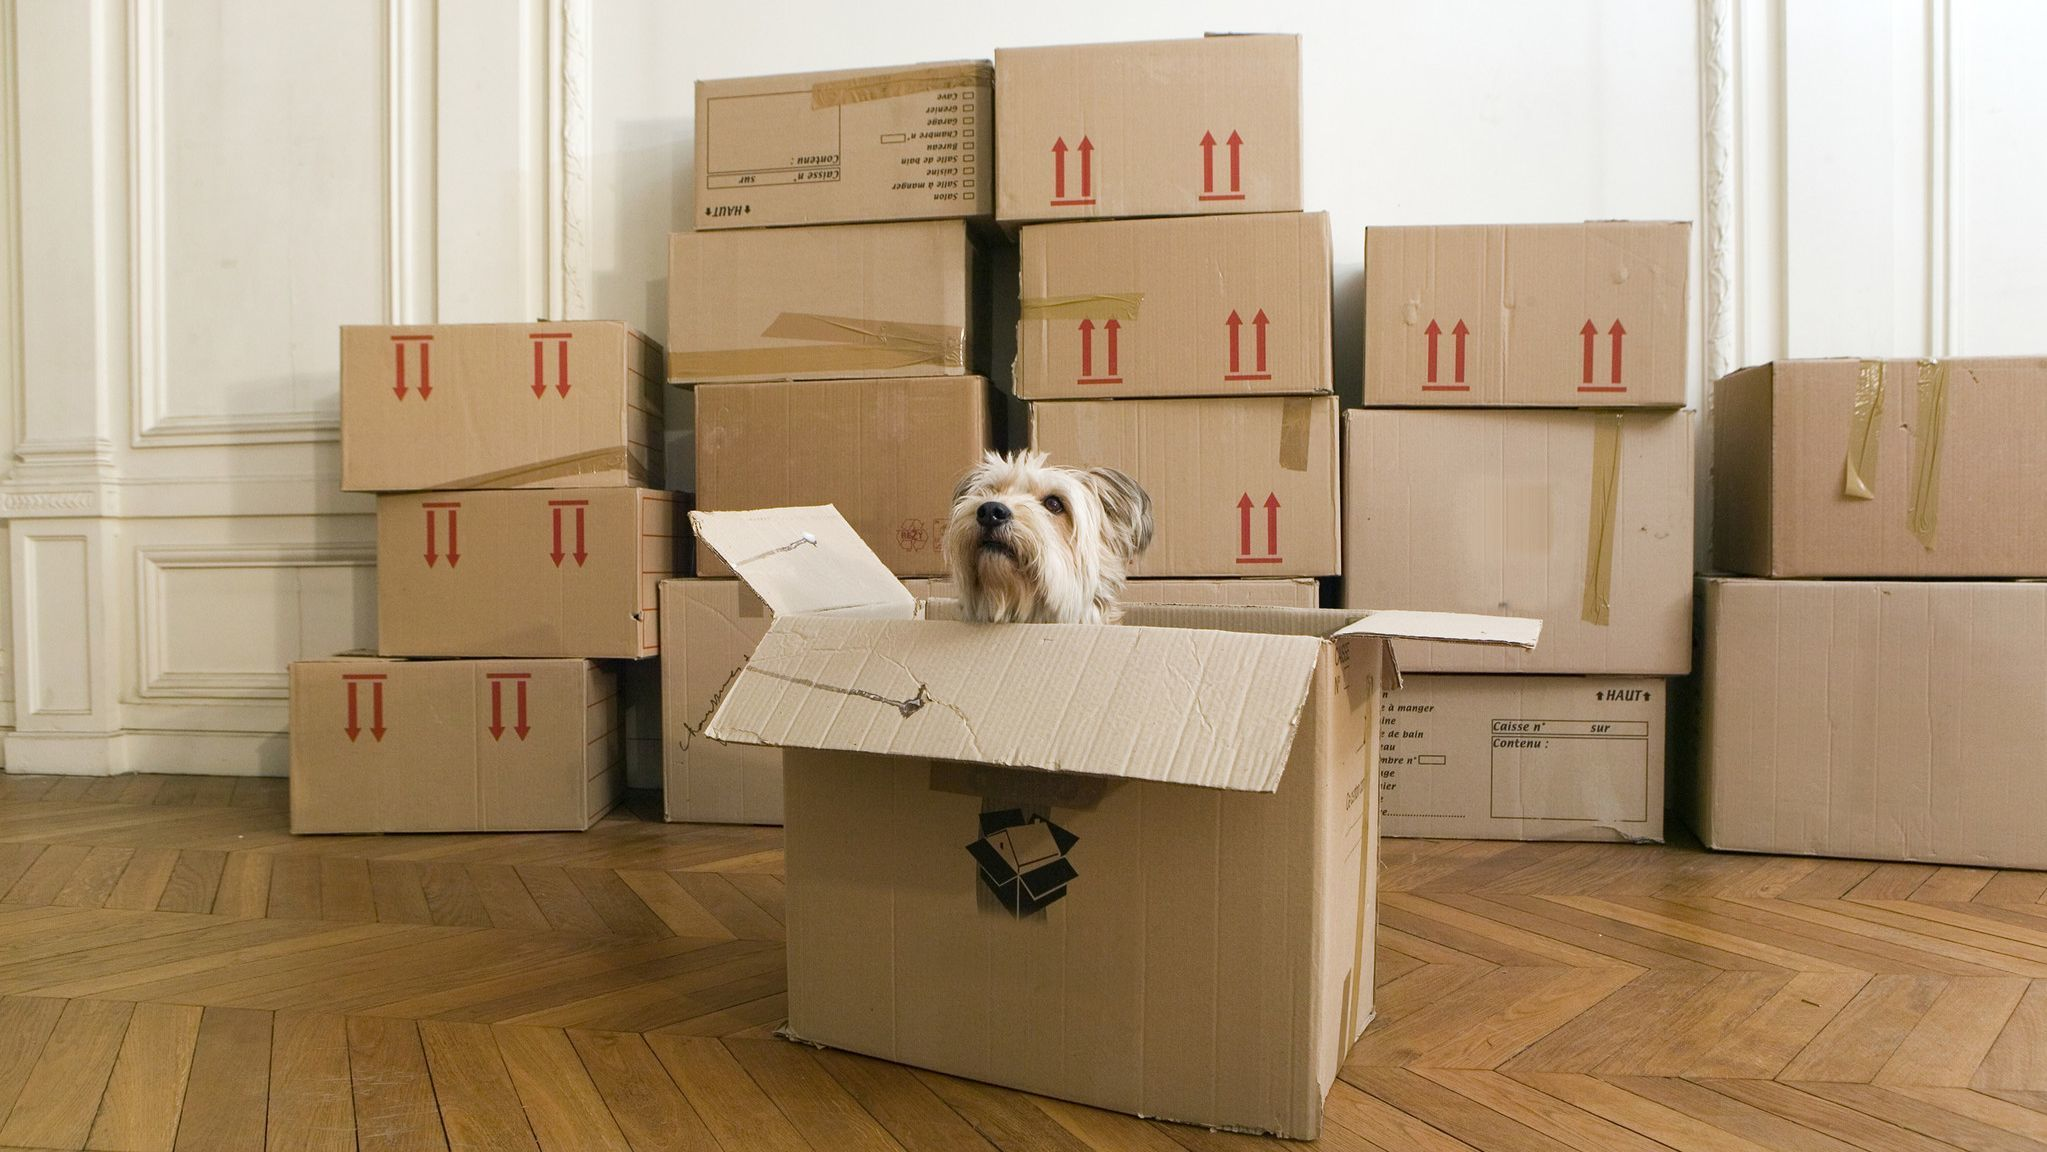 Surprises and mortgages from the 'seventh circle of hell': Things I wish I knew before buying my first home